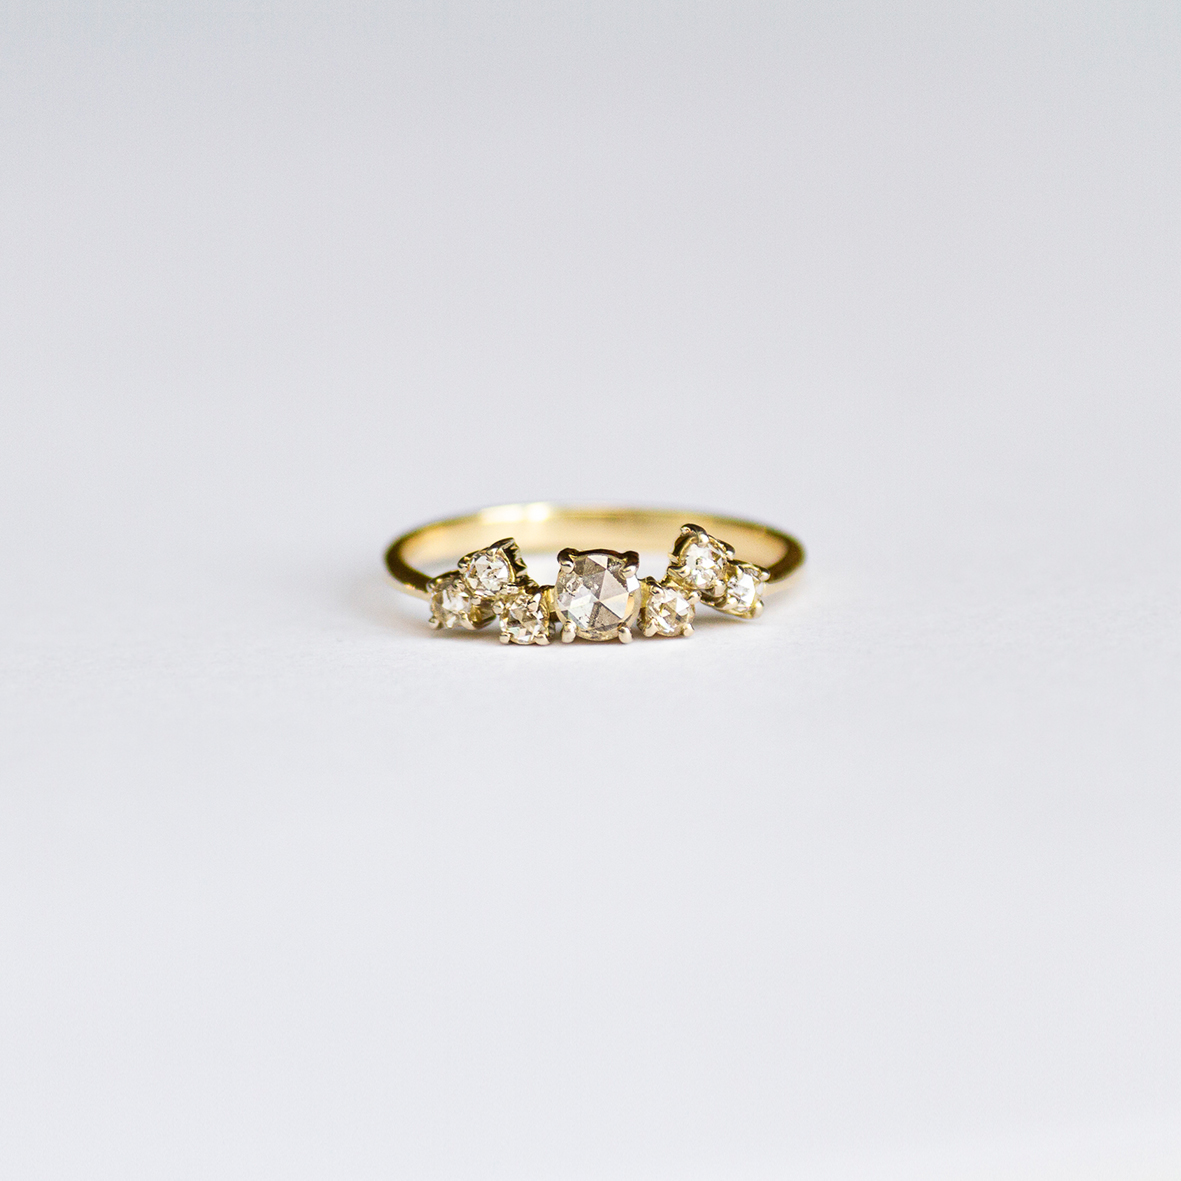 3. OONA_engagement_ficha1_wave diamonds ring